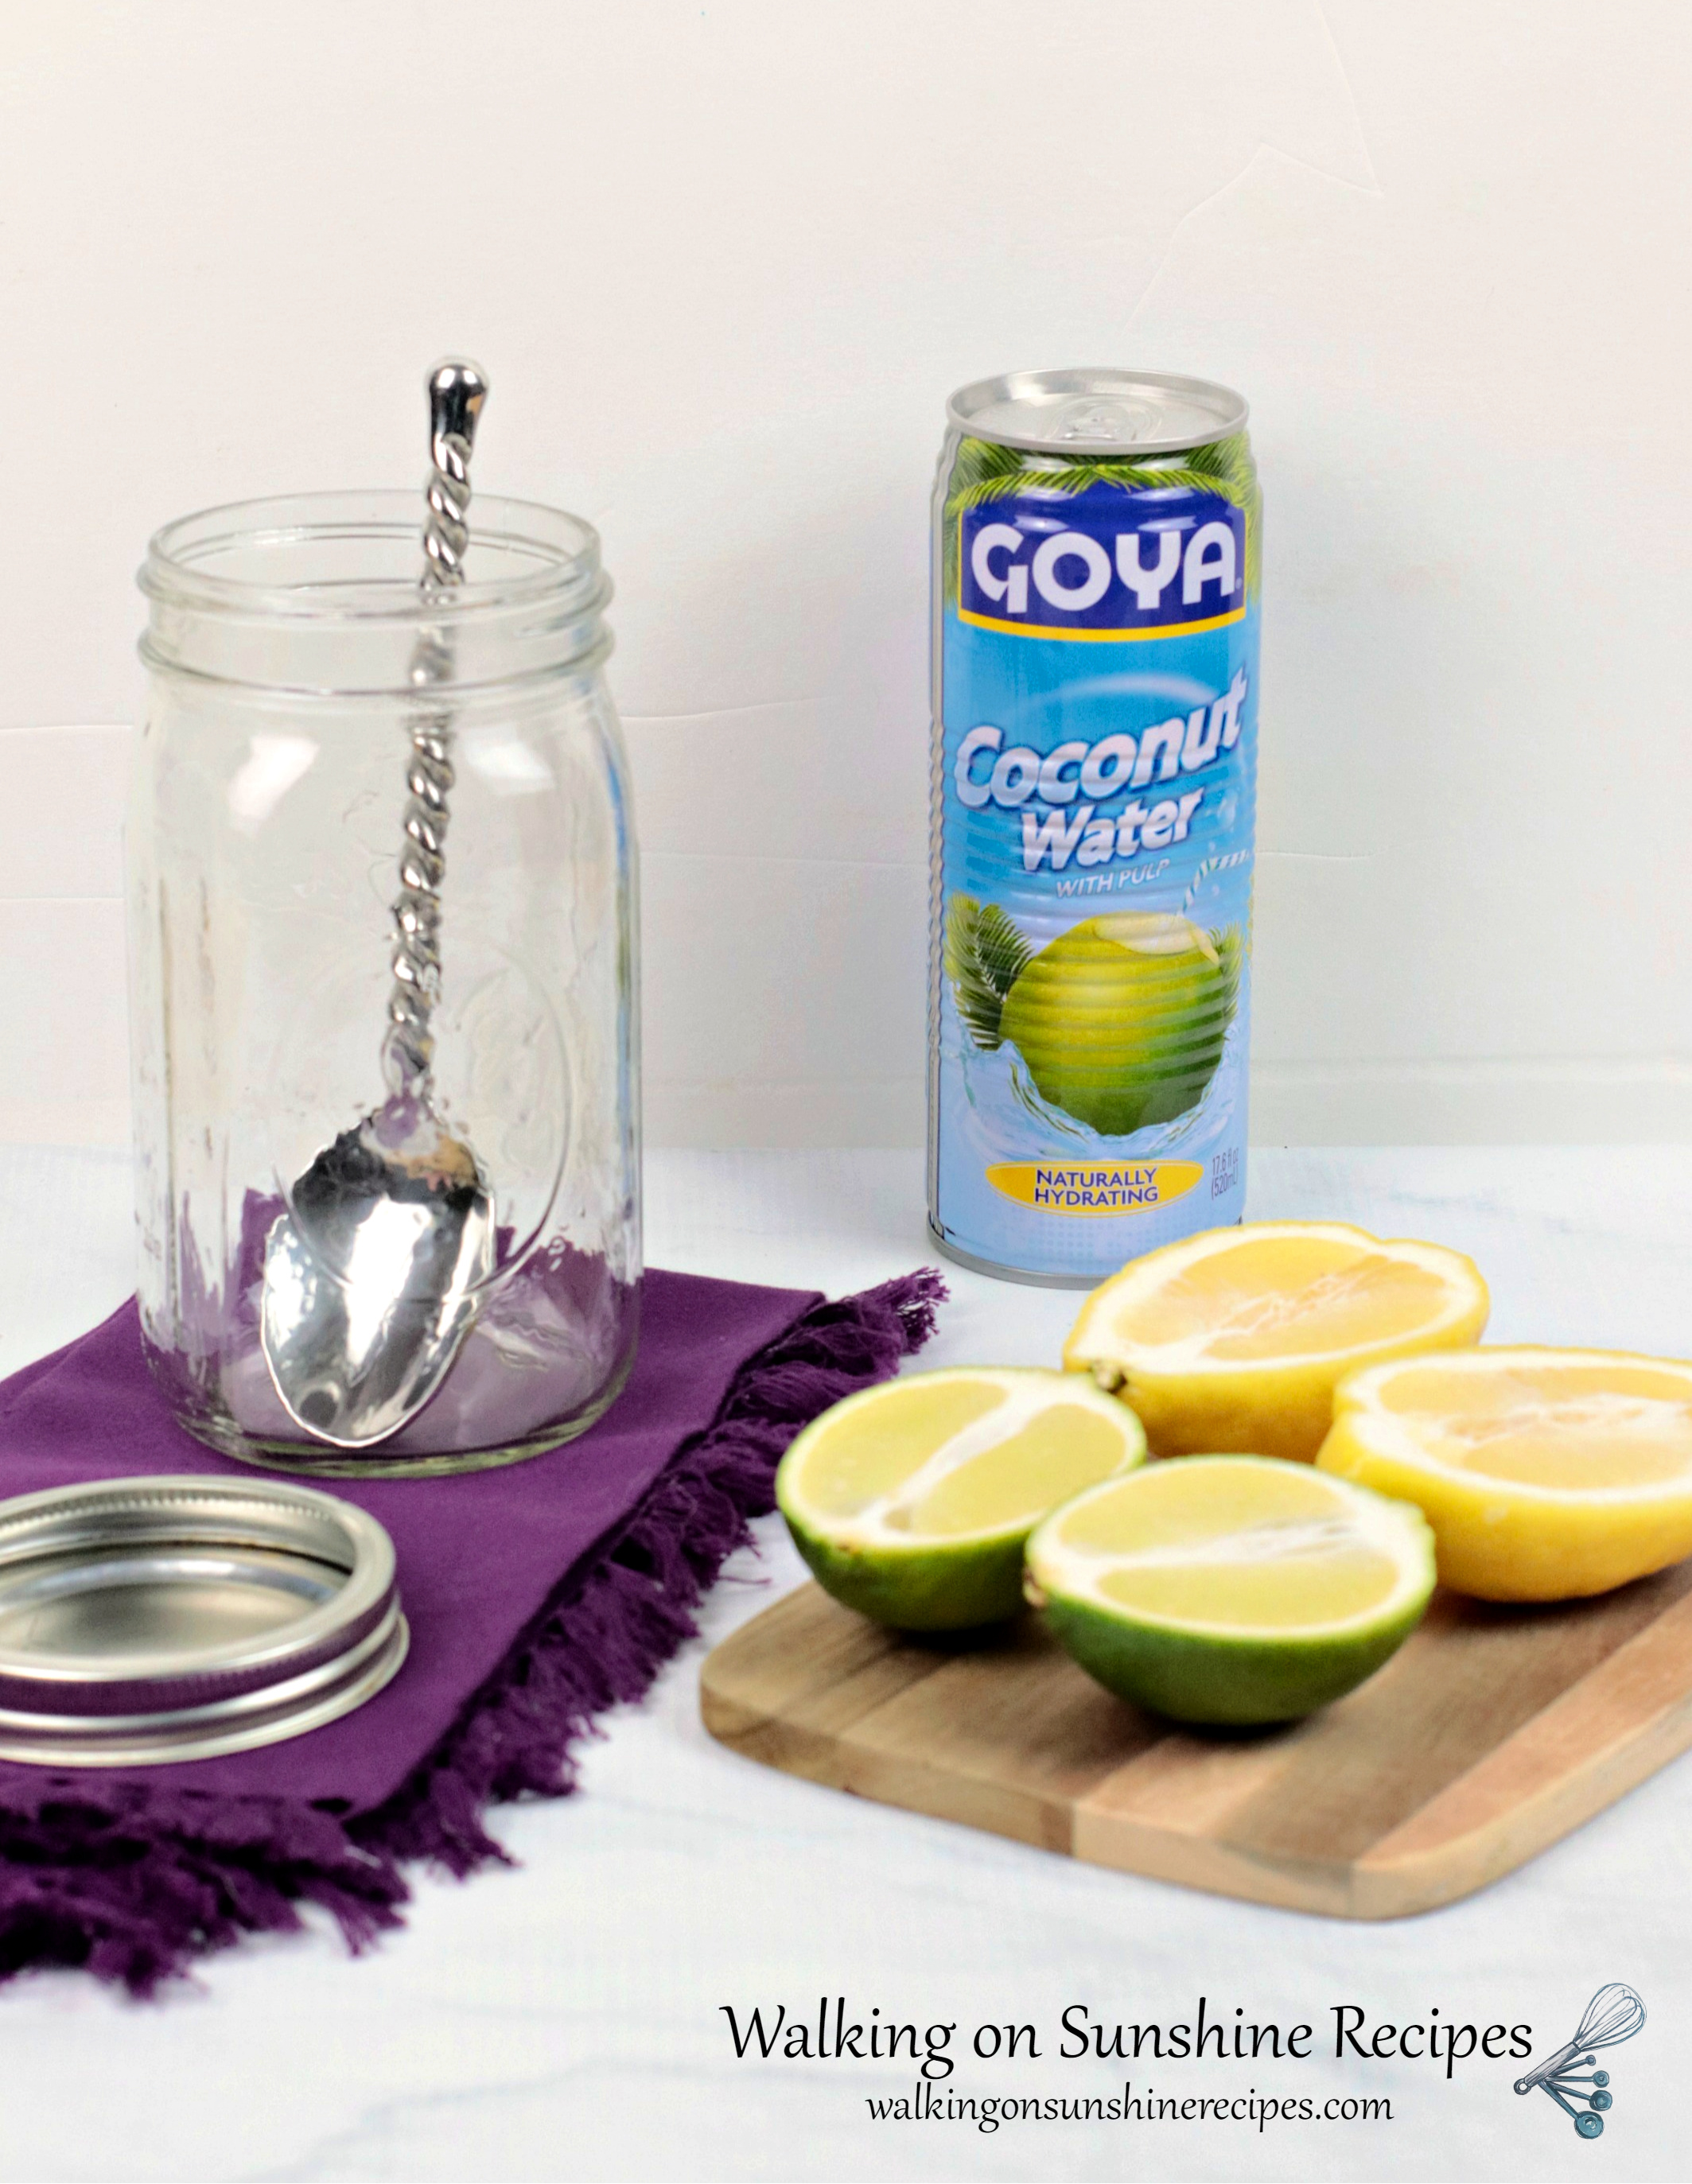 Lemon lime water ingredients and tools. Can of Goya coconut water, lemon cut in half, lime cut in half displayed on wood cutting board. Empty mason jar with large metal spoon inside on top of a purple cloth napkin.